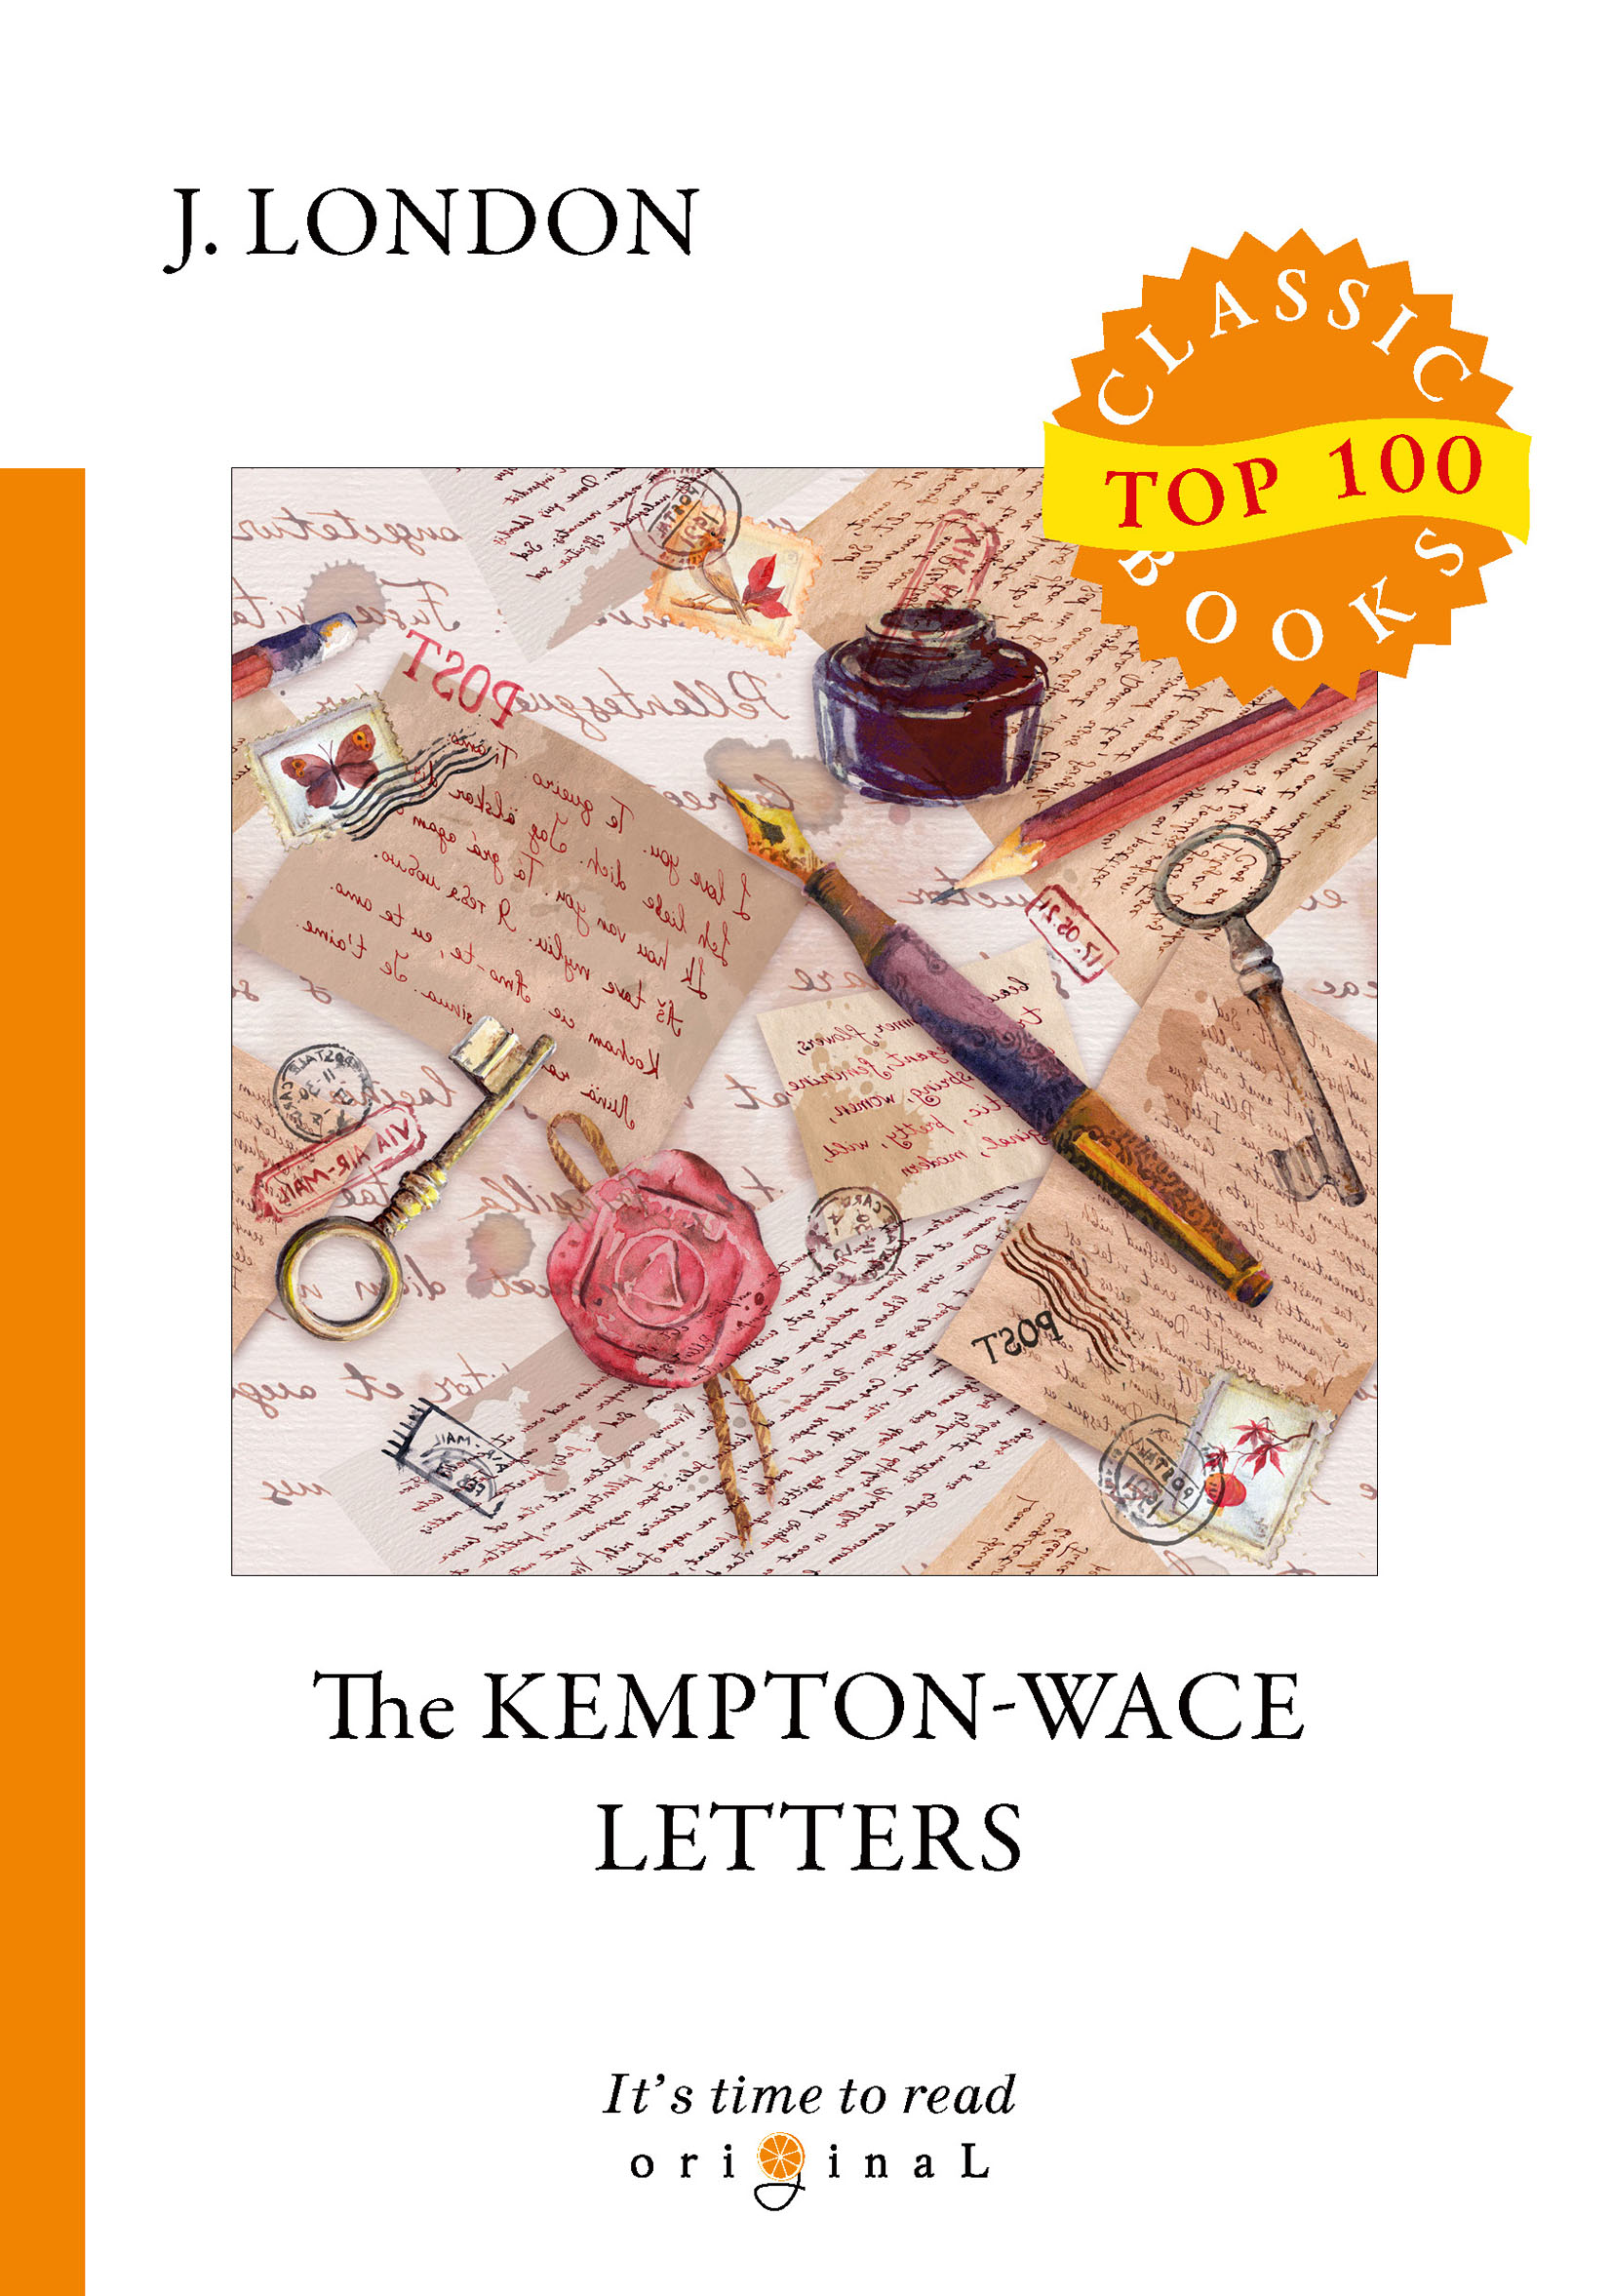 J. London The Kempton-Wace Letters jack london the kempton wace letters